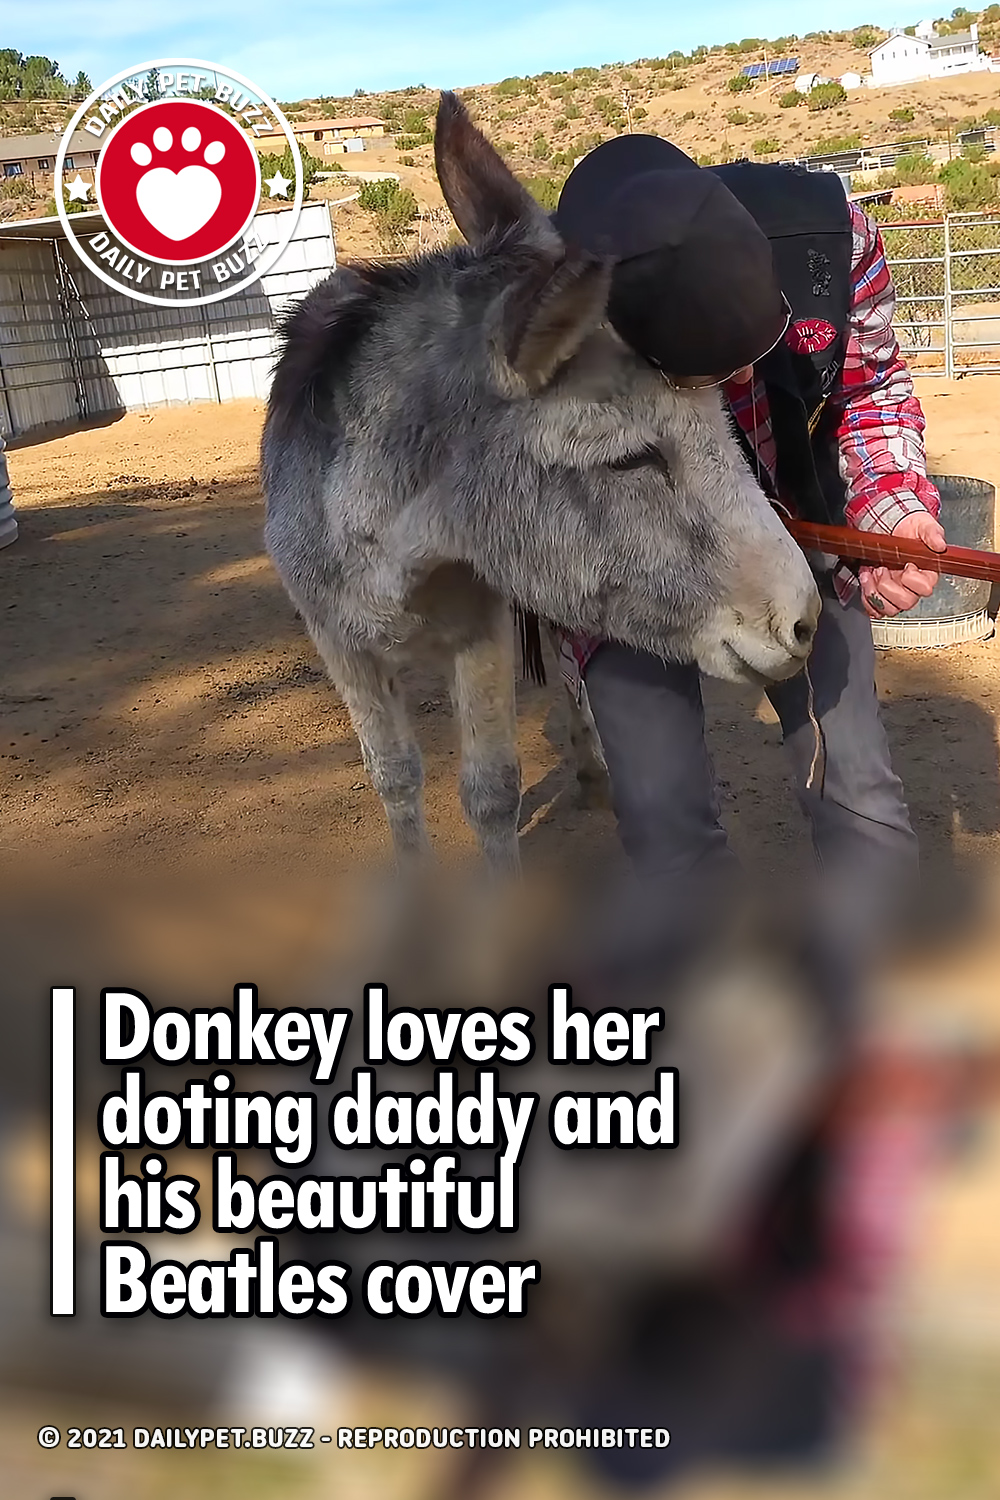 Donkey loves her doting daddy and his beautiful Beatles cover